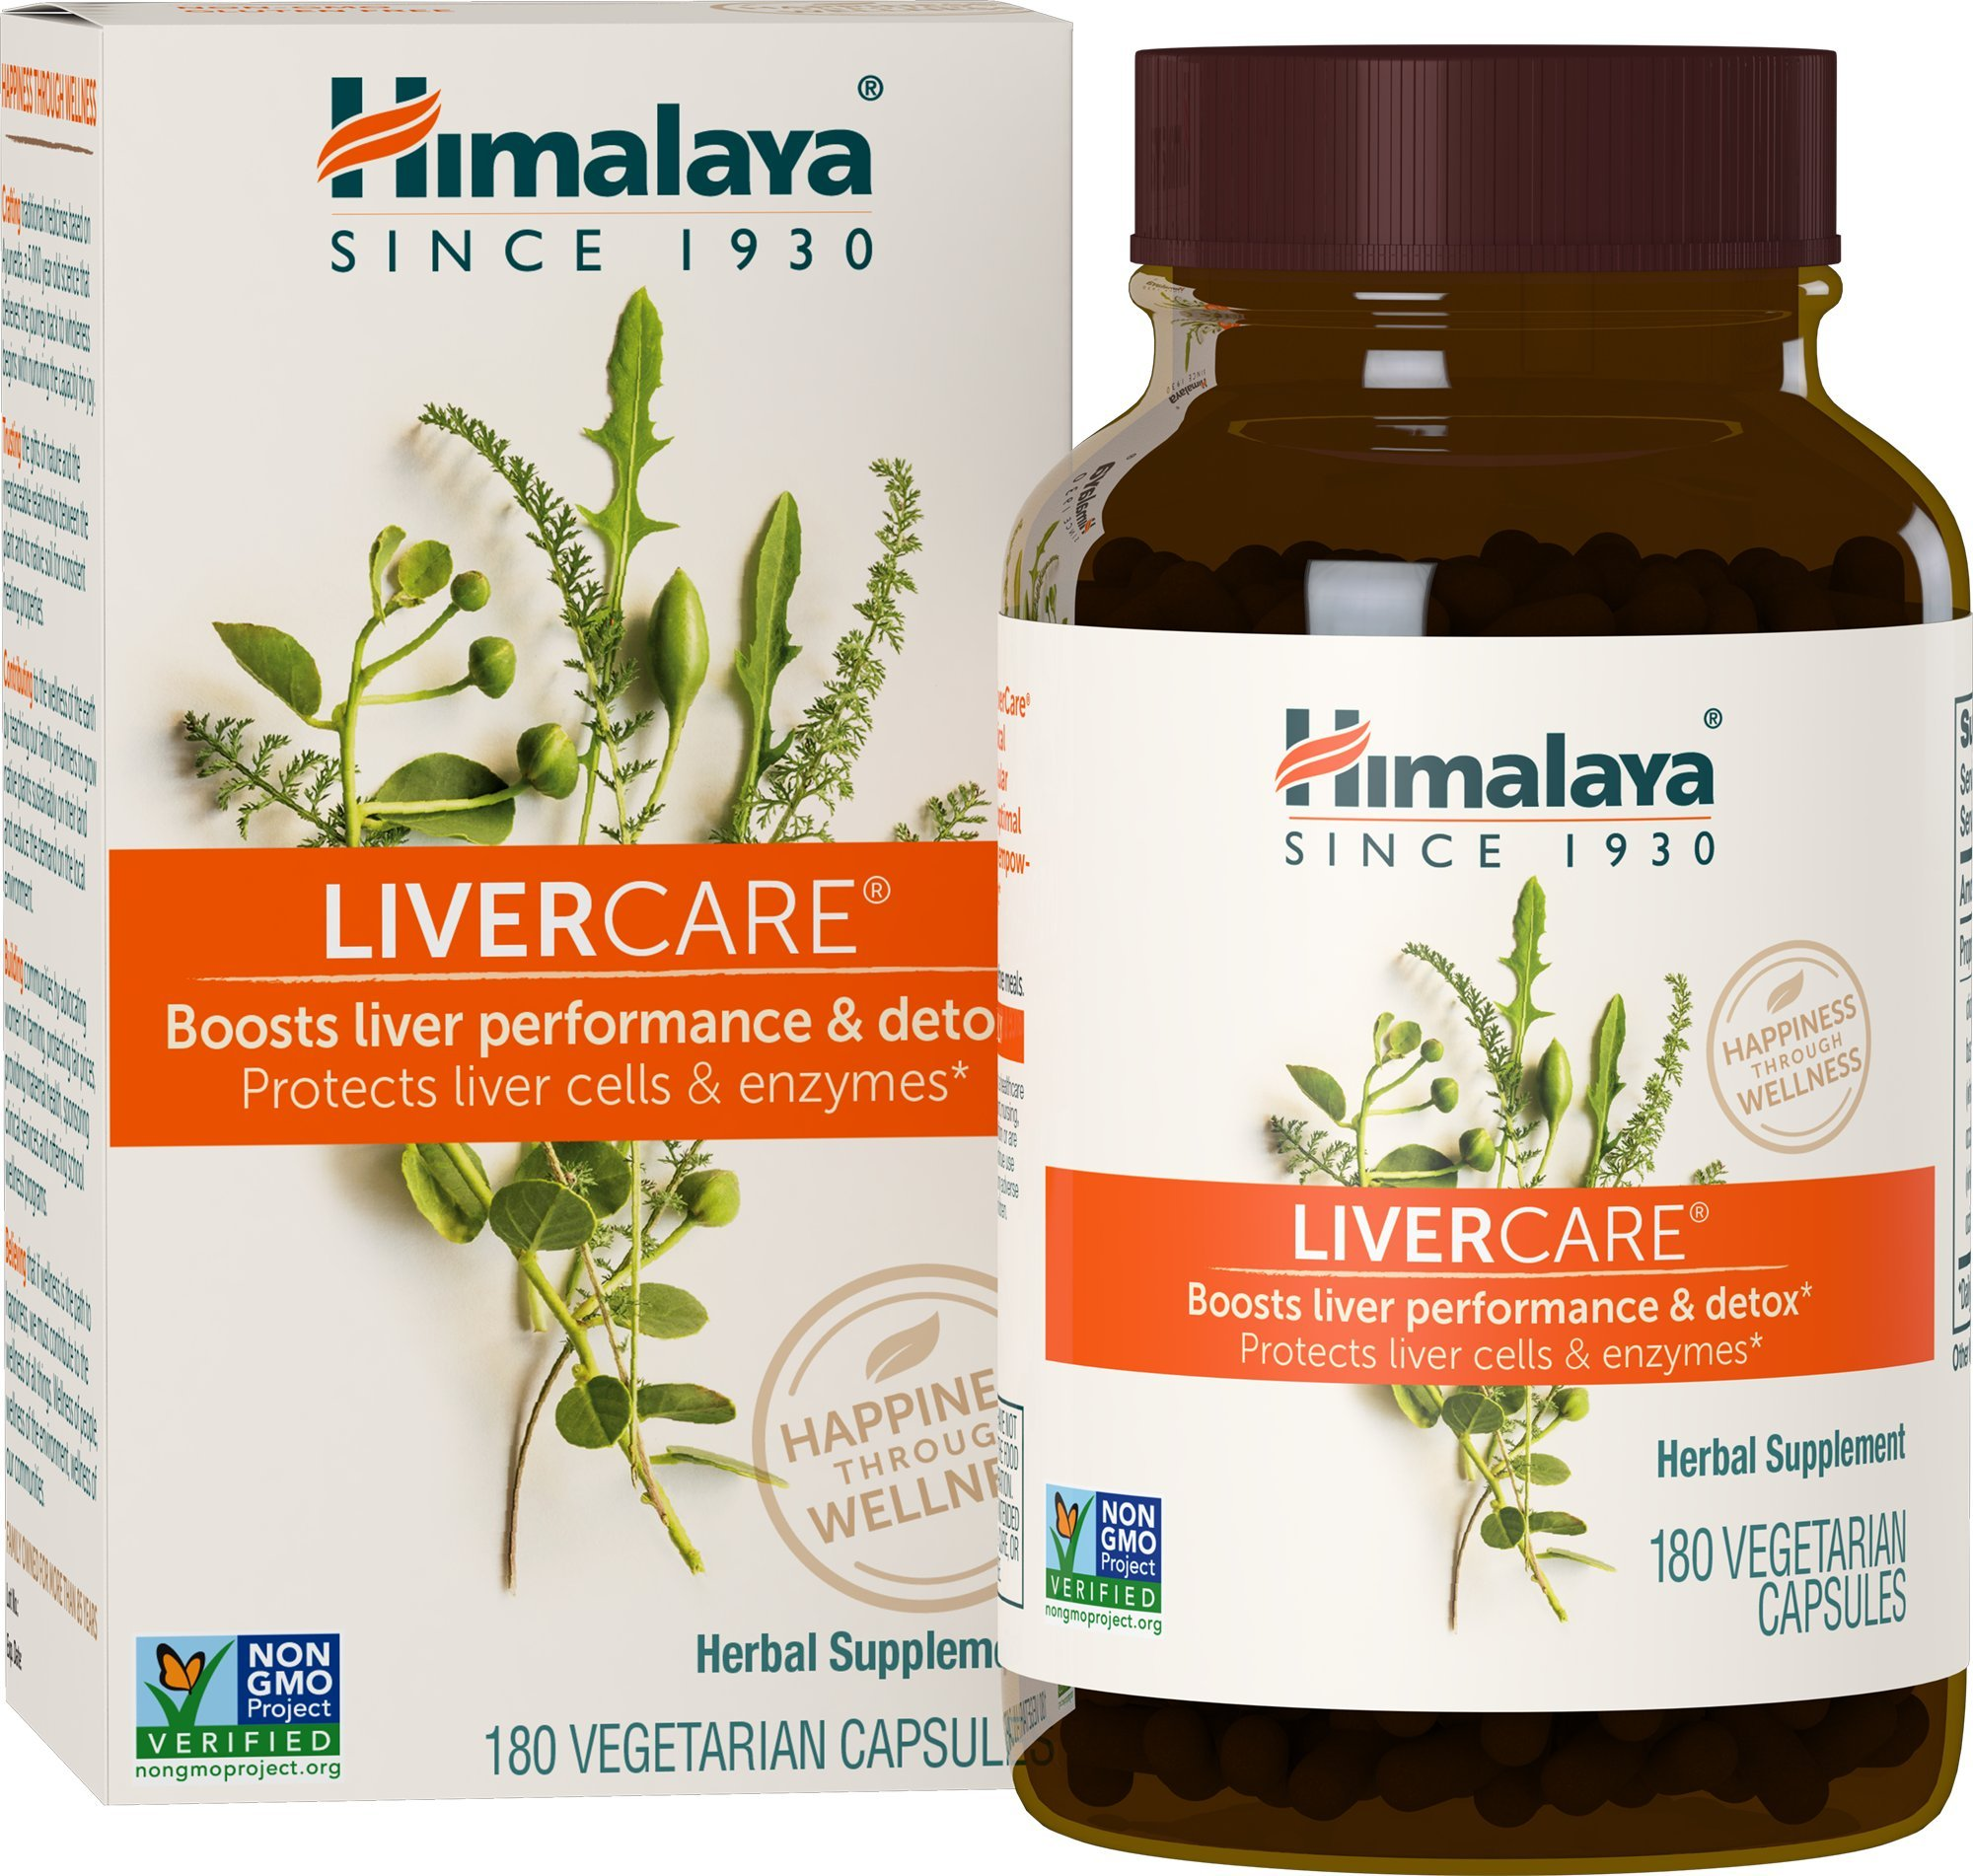 Himalaya LiverCare/Liv. 52 for Liver Cleanse and Liver Detox 375 mg, 180 Capsules, 90 Day Supply by Himalaya Herbal Healthcare